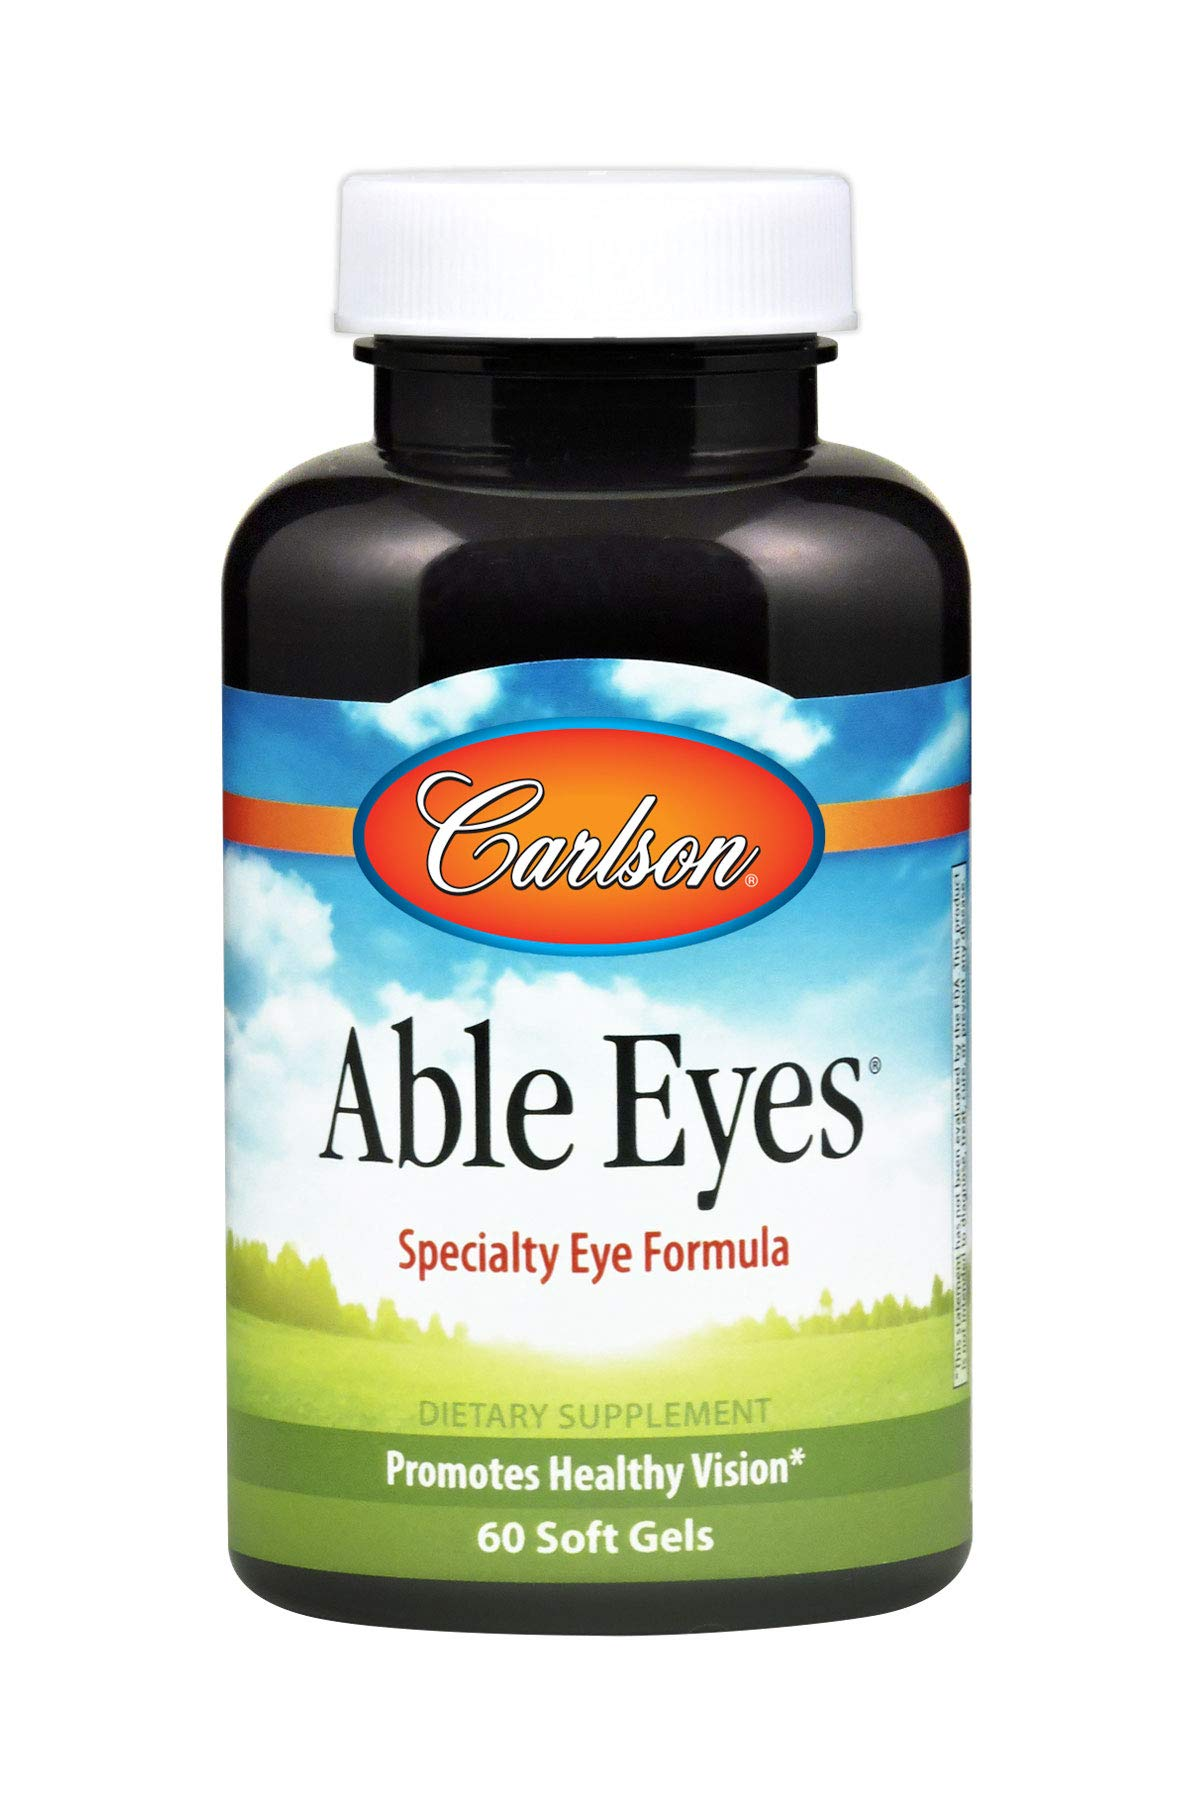 Carlson - Able Eyes, Specialty Eye Formula, Promotes Healthy Vision, 60 Soft gels